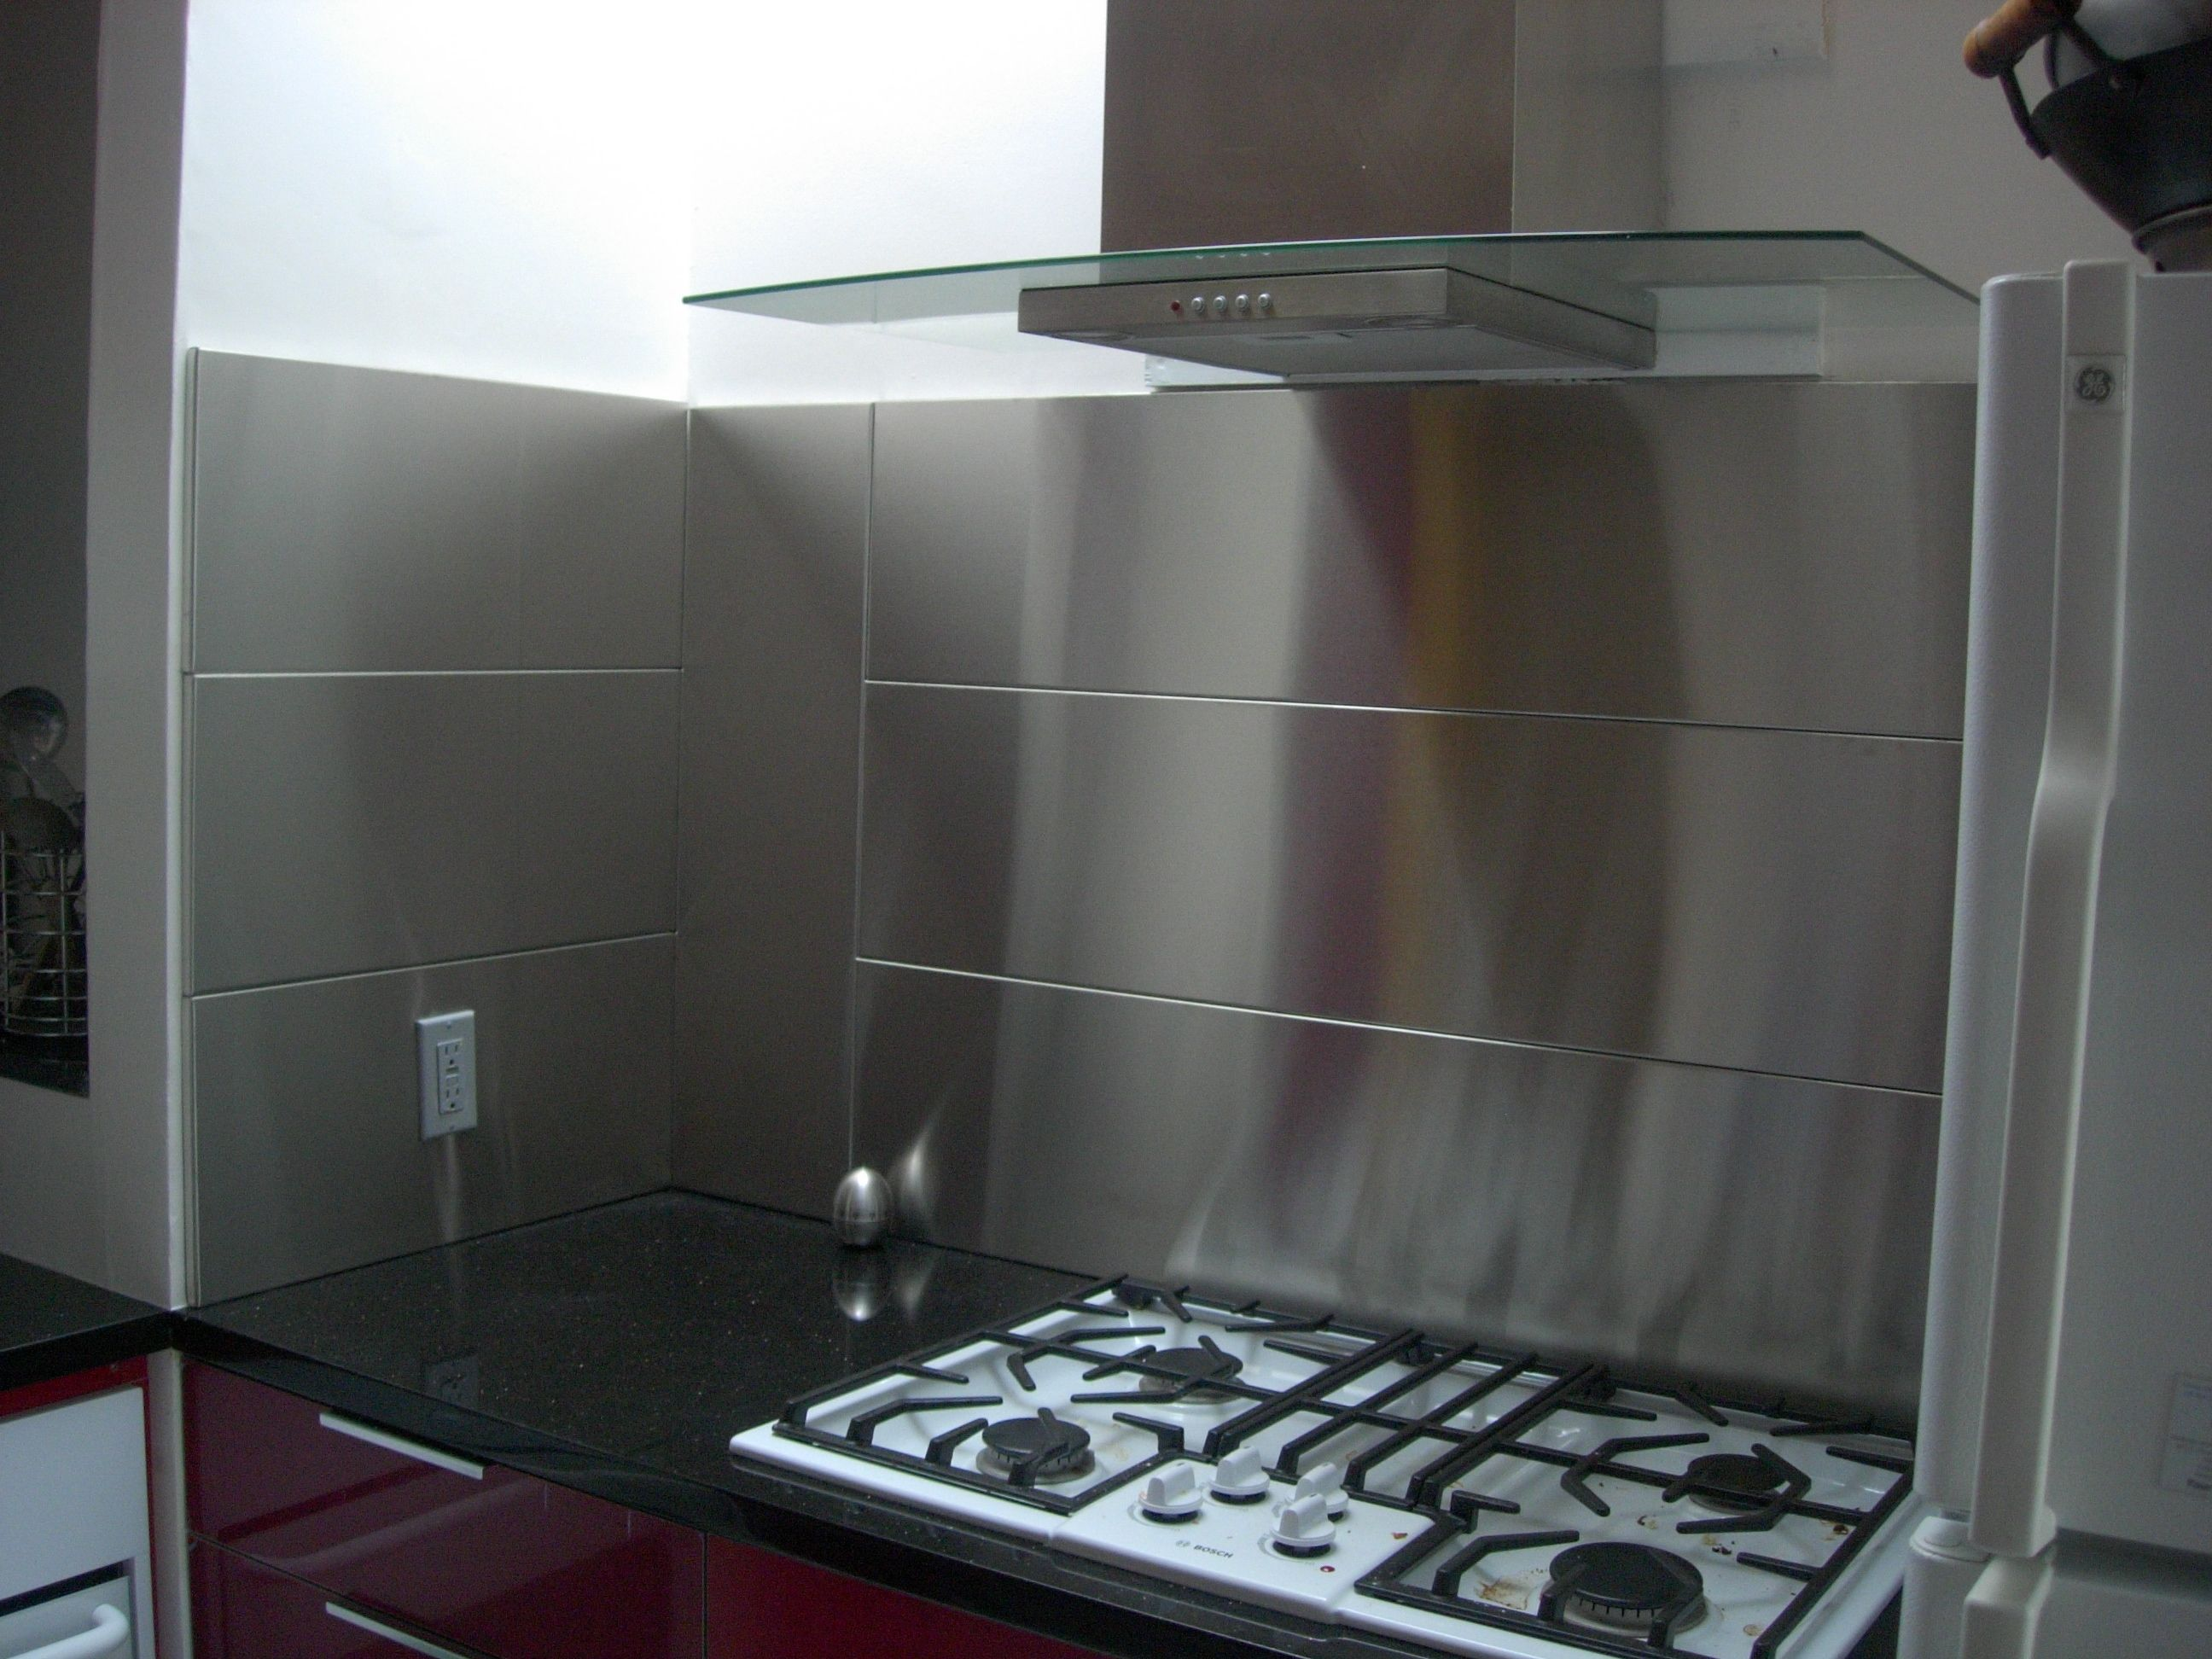 Ikea Stainless Steel Backsplash Fastbo Rails Come In Lengths Of